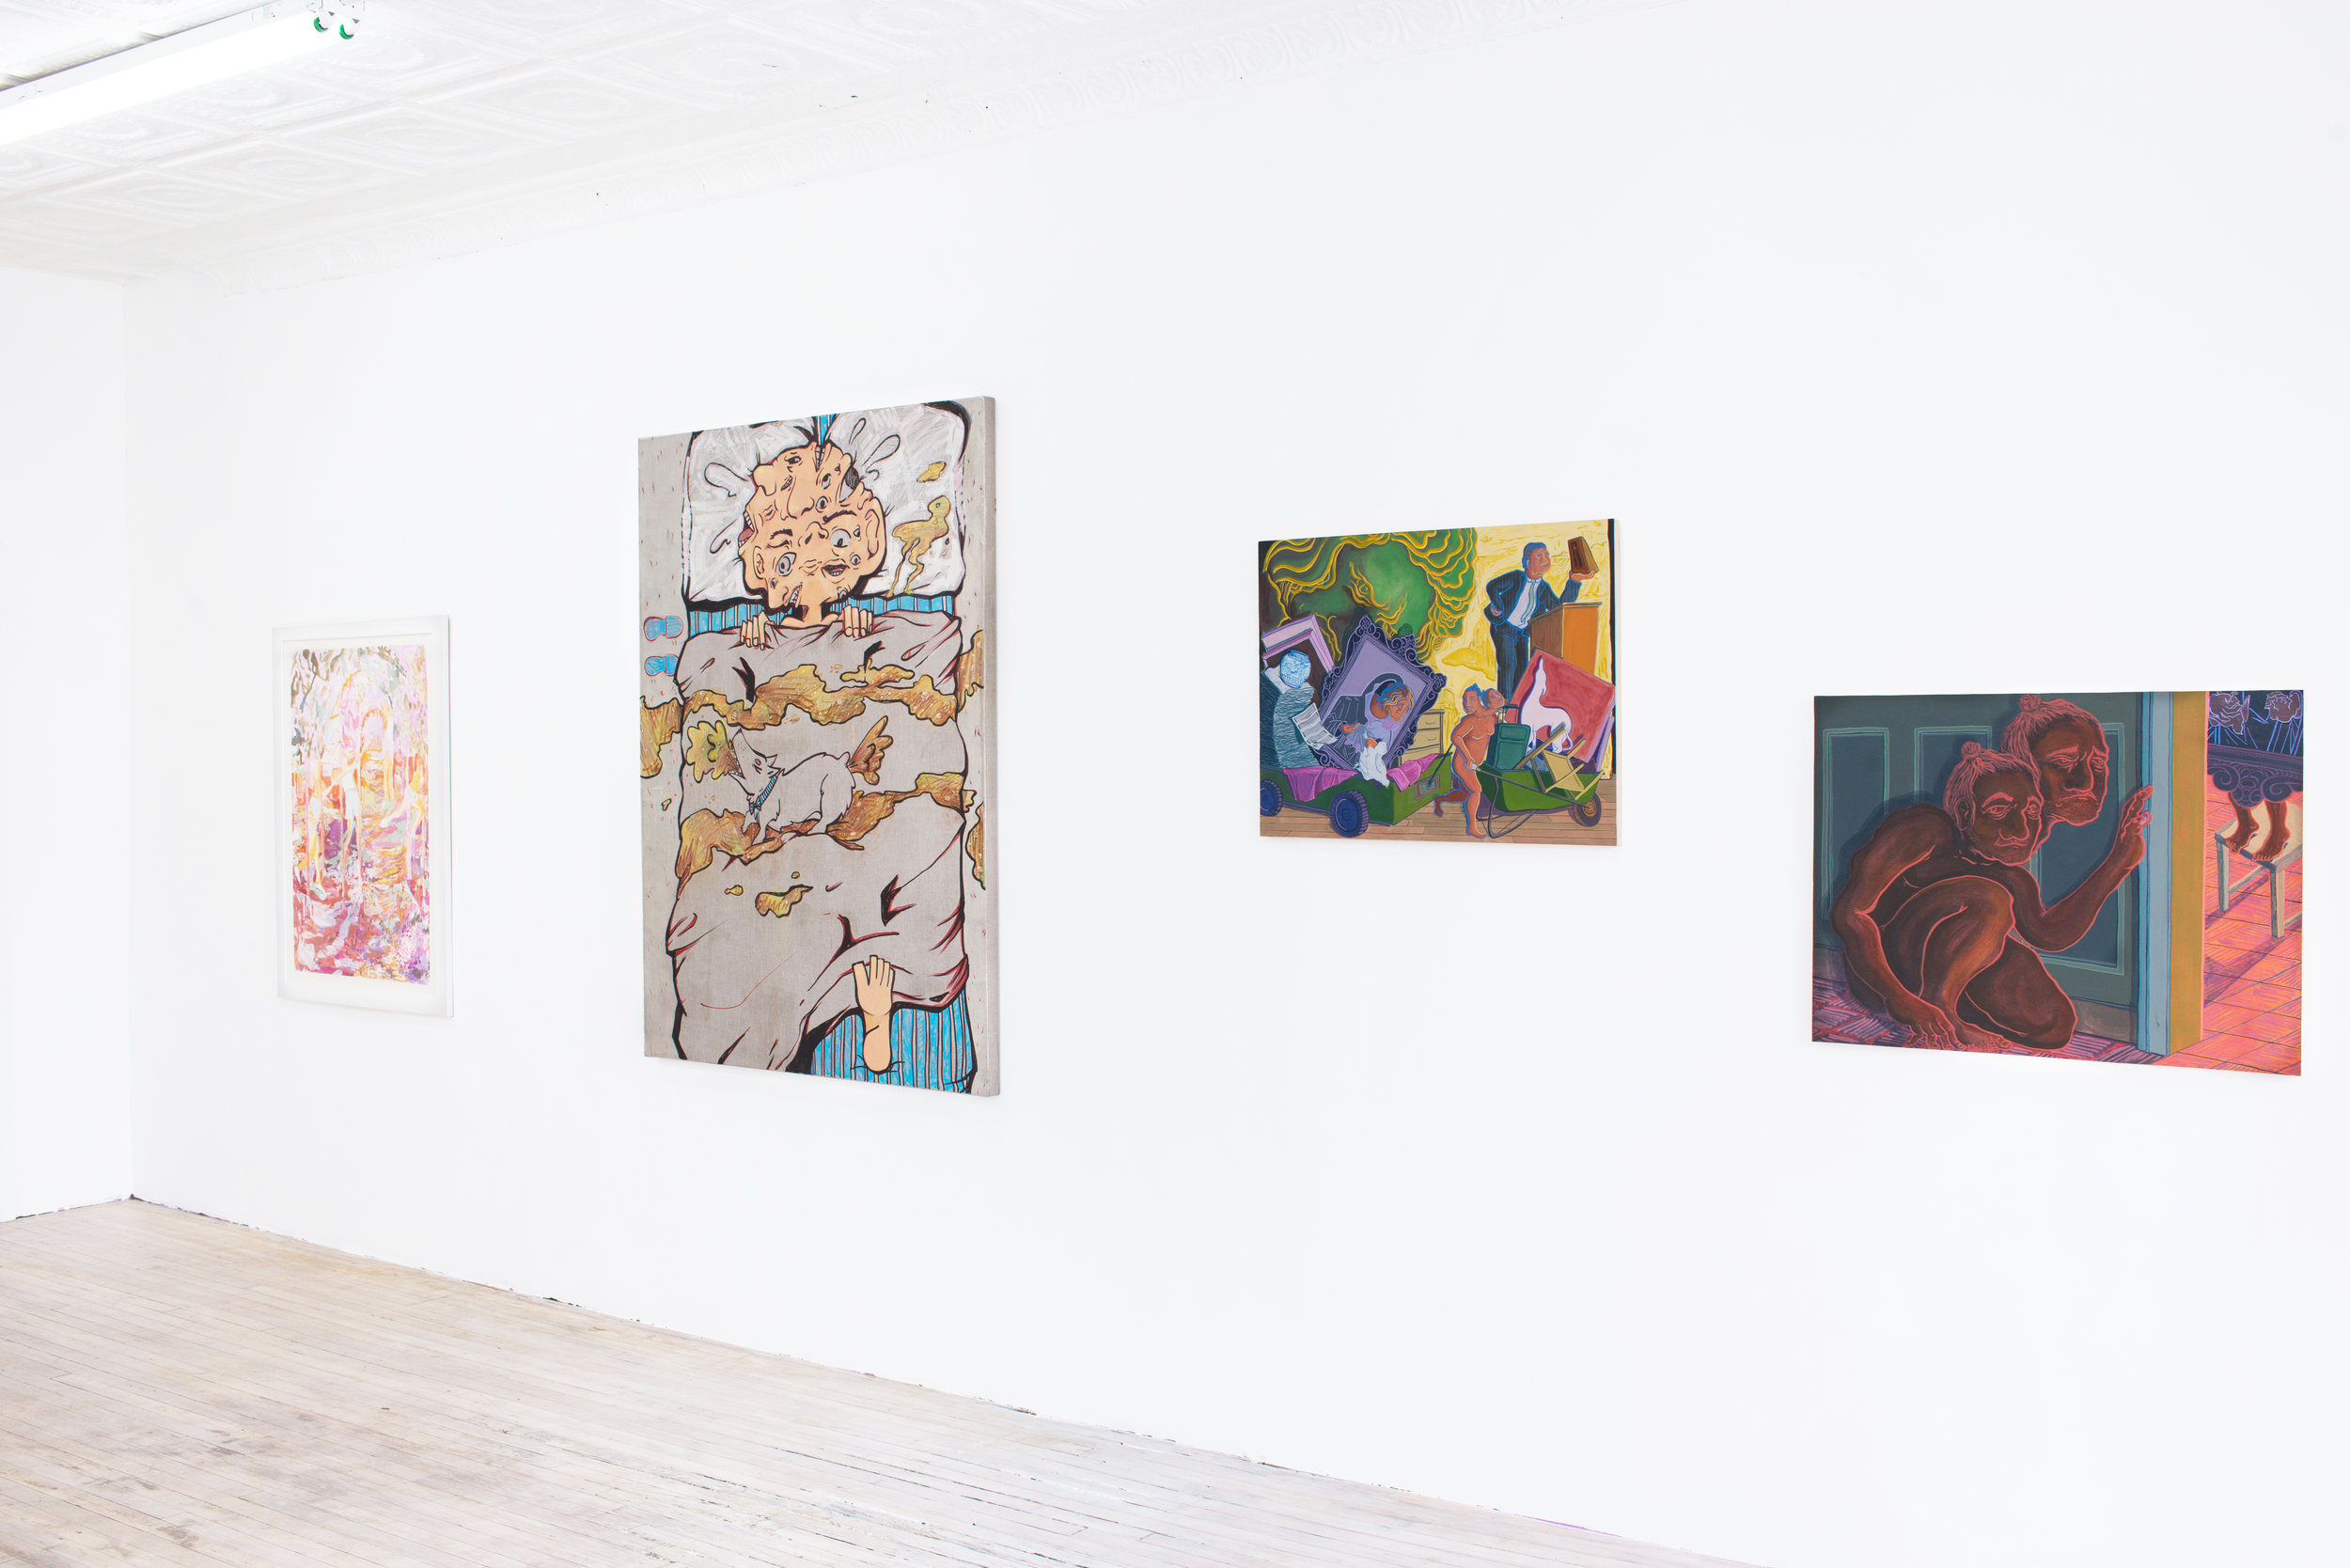 - RISD MFA PaintingJuly 7-July 30, 2017Images